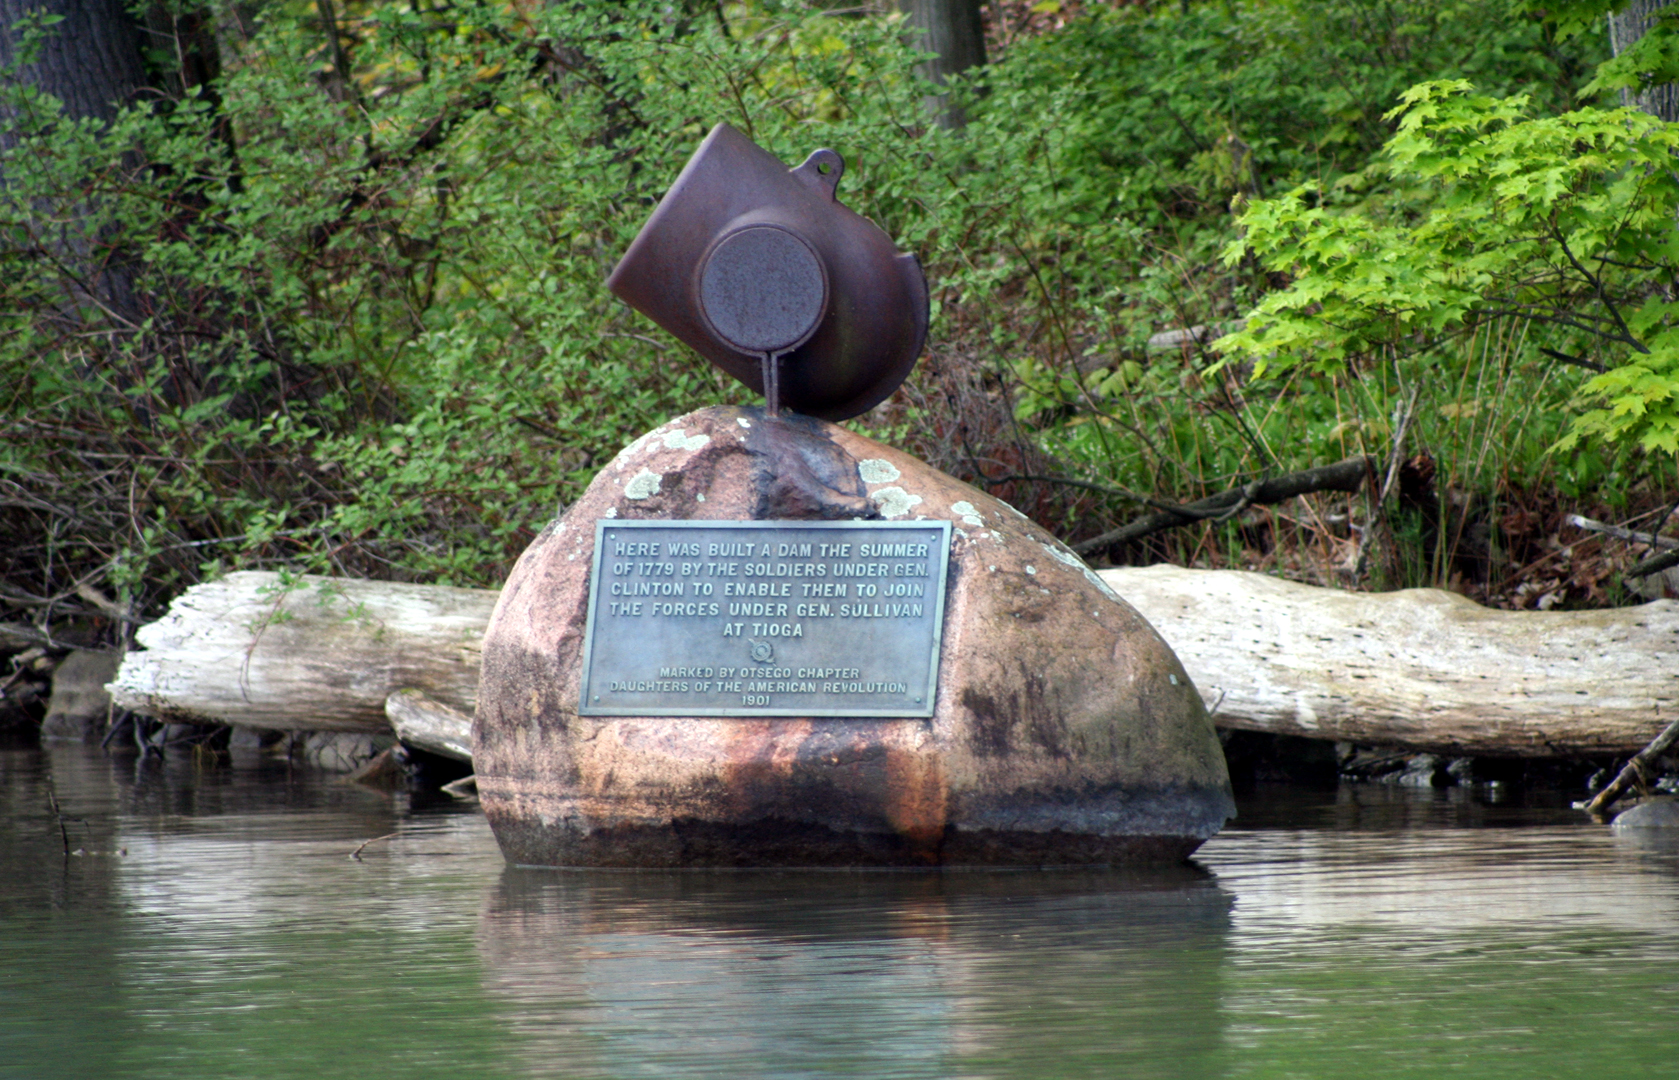 Monument at the site of General Clinton's dam at the source of the Susquehanna River on Otsego Lake in Cooperstown, New York. Photo taken by R.A. Nonenmacher on May 29, 2006.